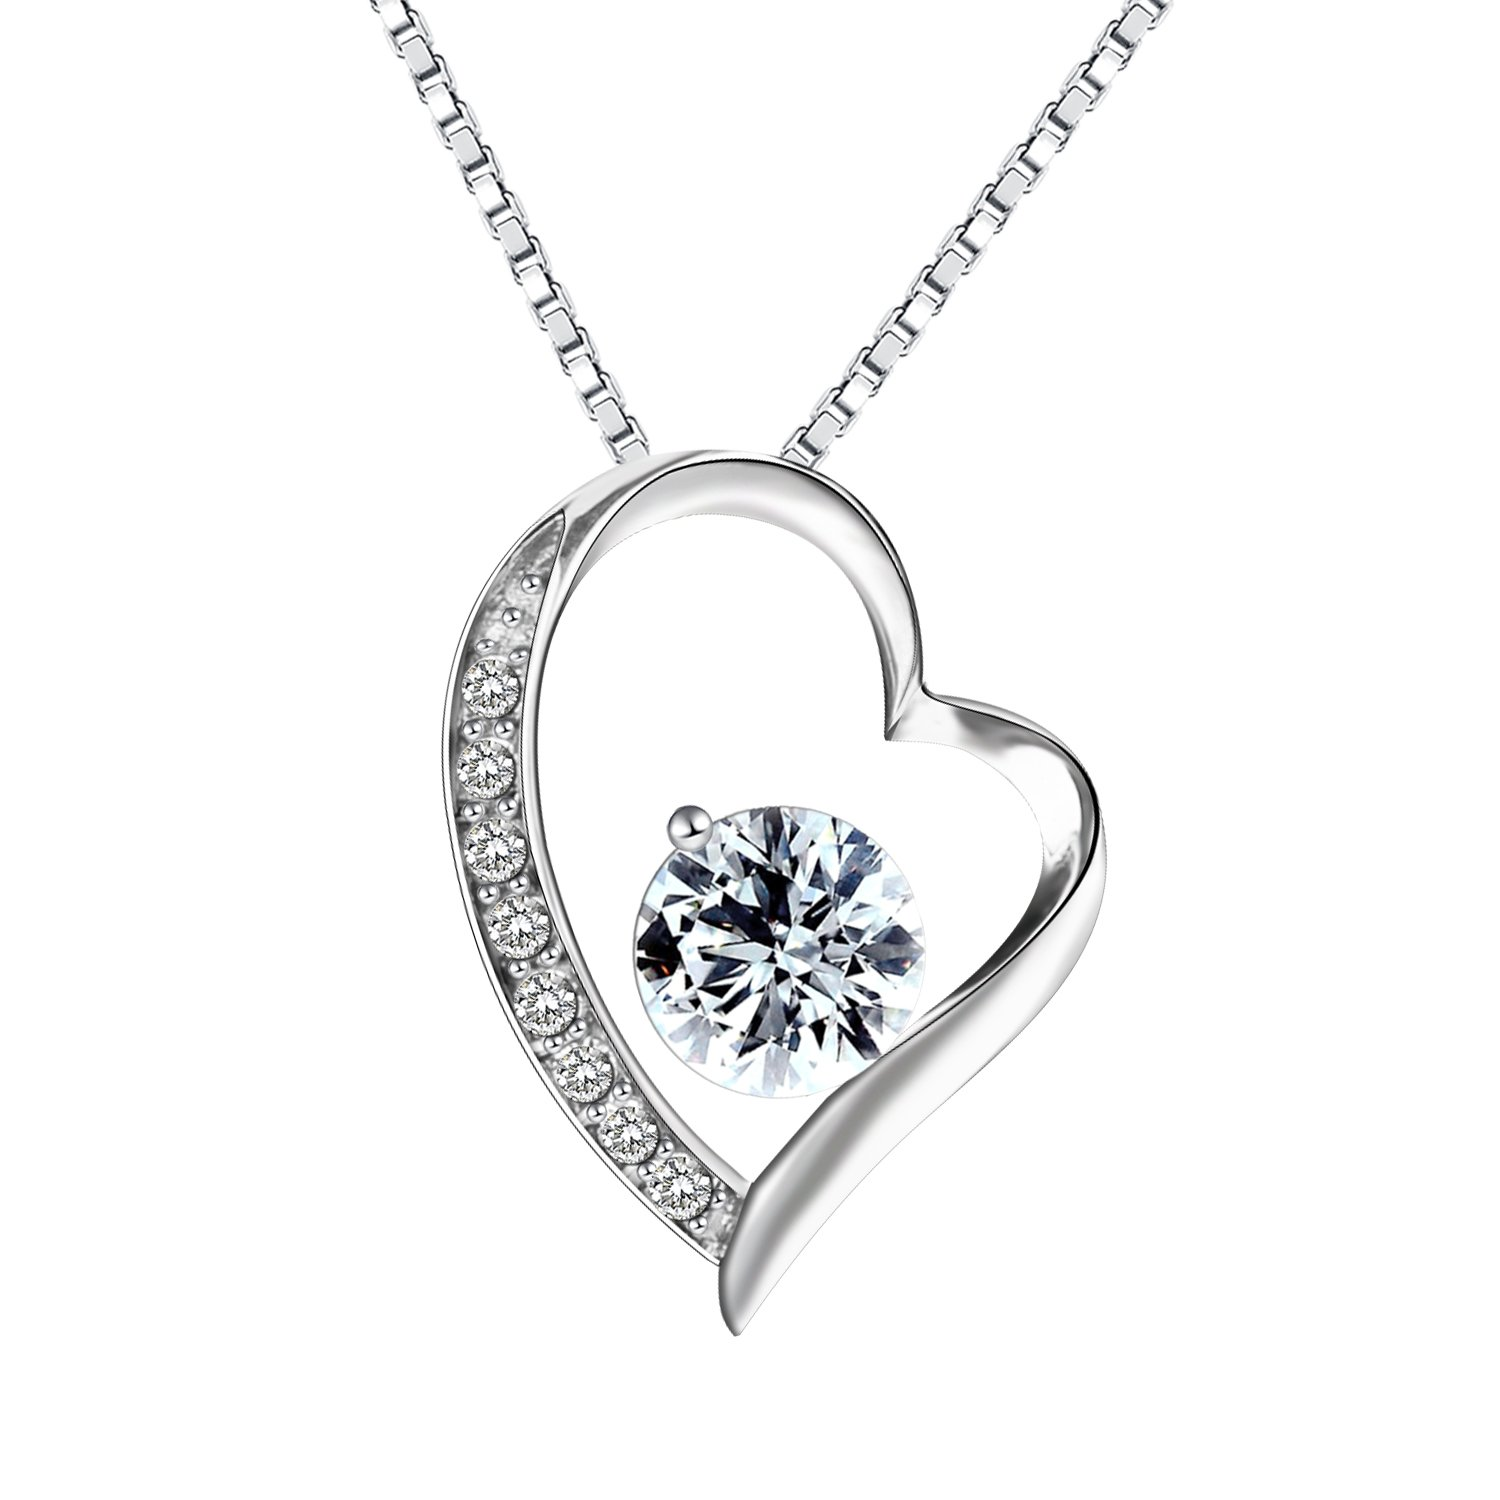 290007e77afd Pealrich 925 Sterling Silver Forever Love Heart Diamond Pendant Necklace